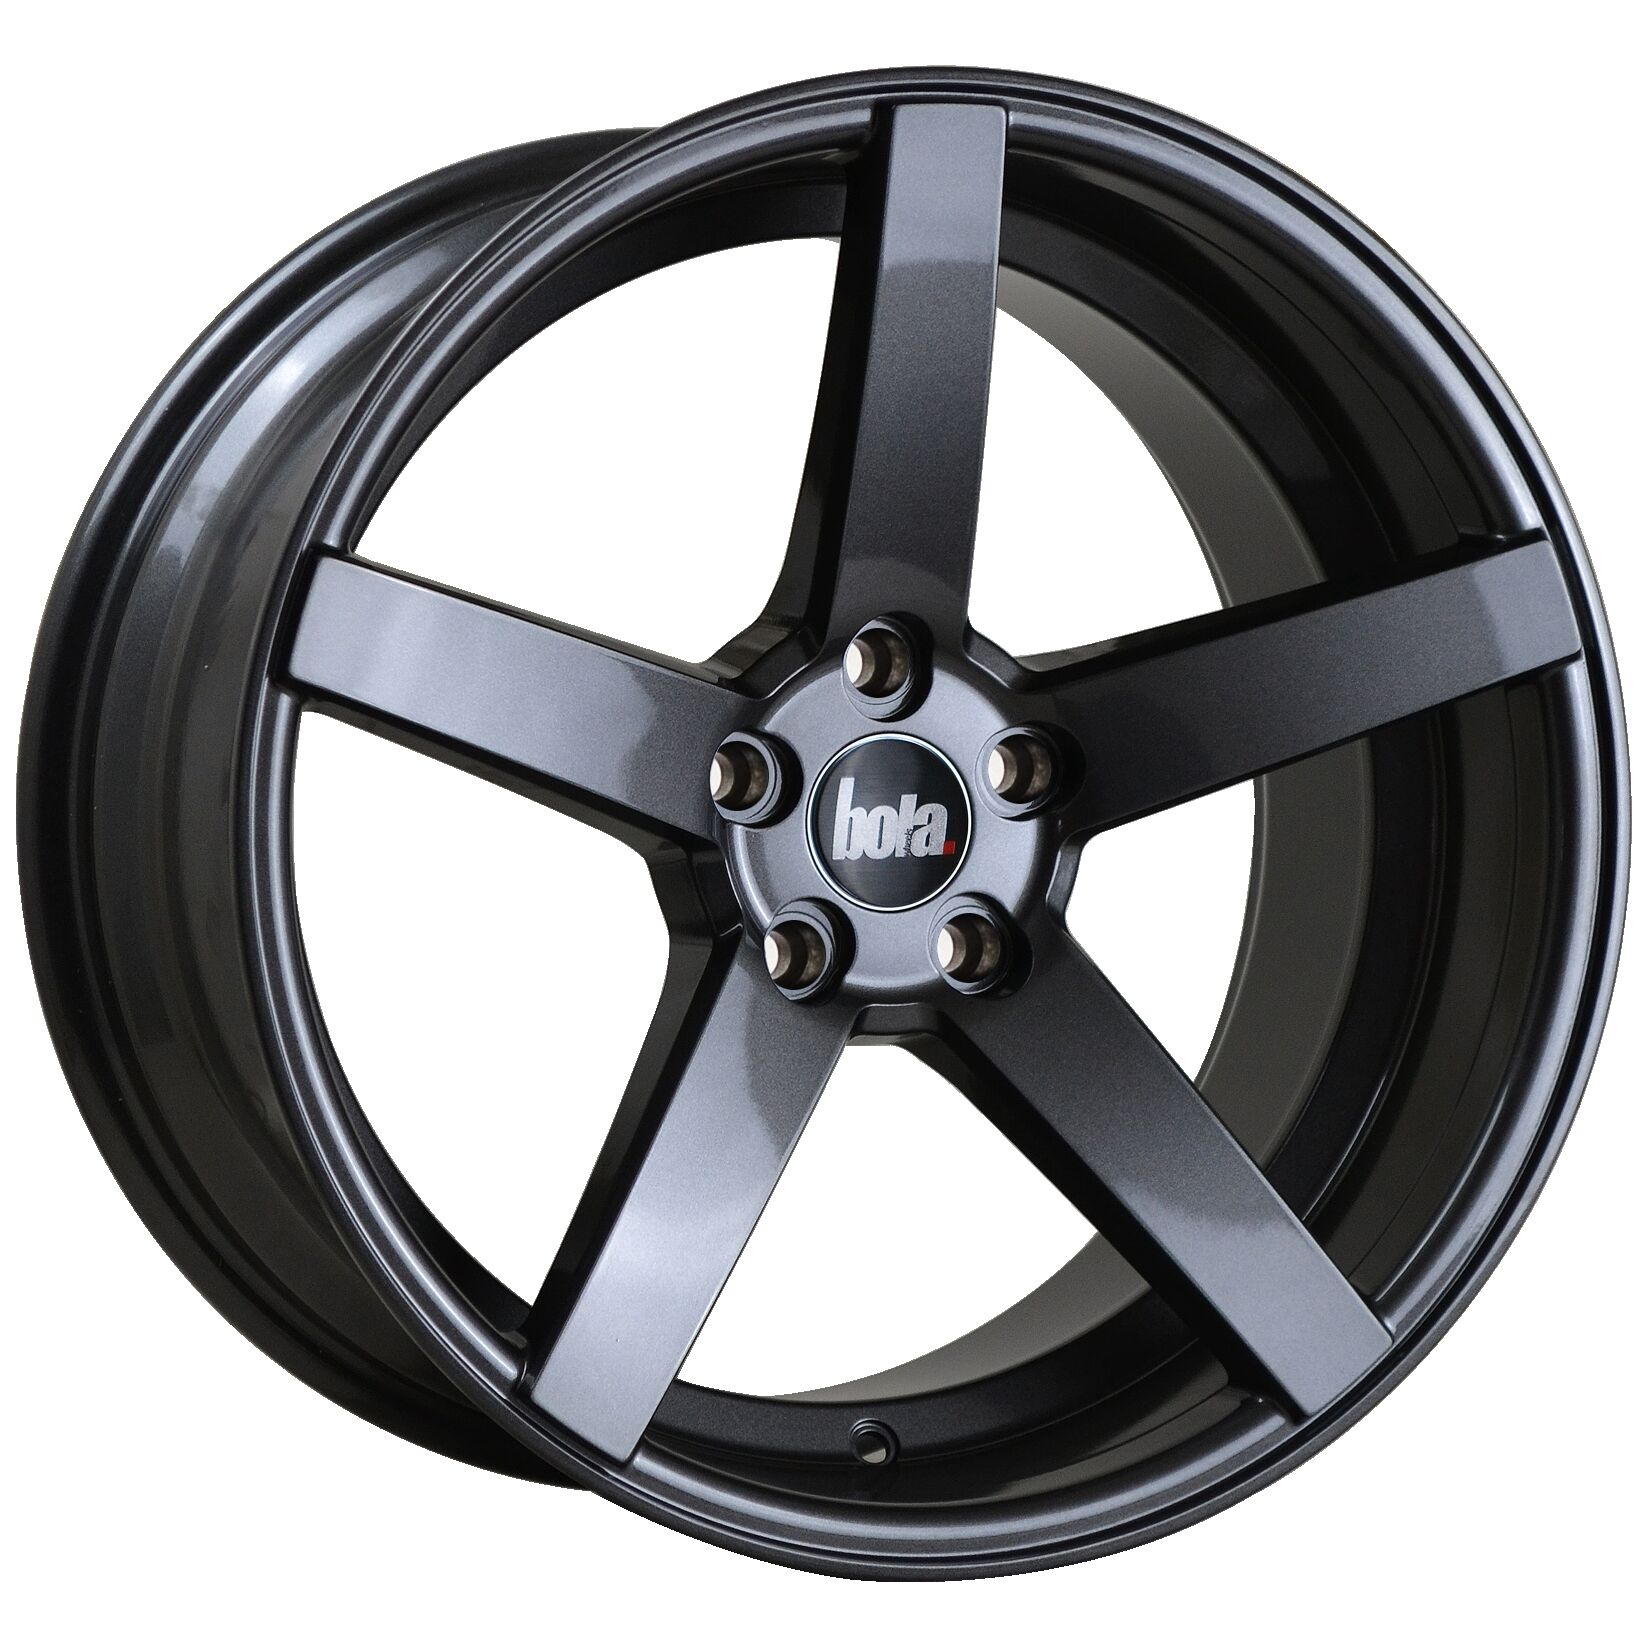 "18"" BOLA B2 Wheels - Gloss Gunmetal - VW / Audi / Mercedes - 5x112"